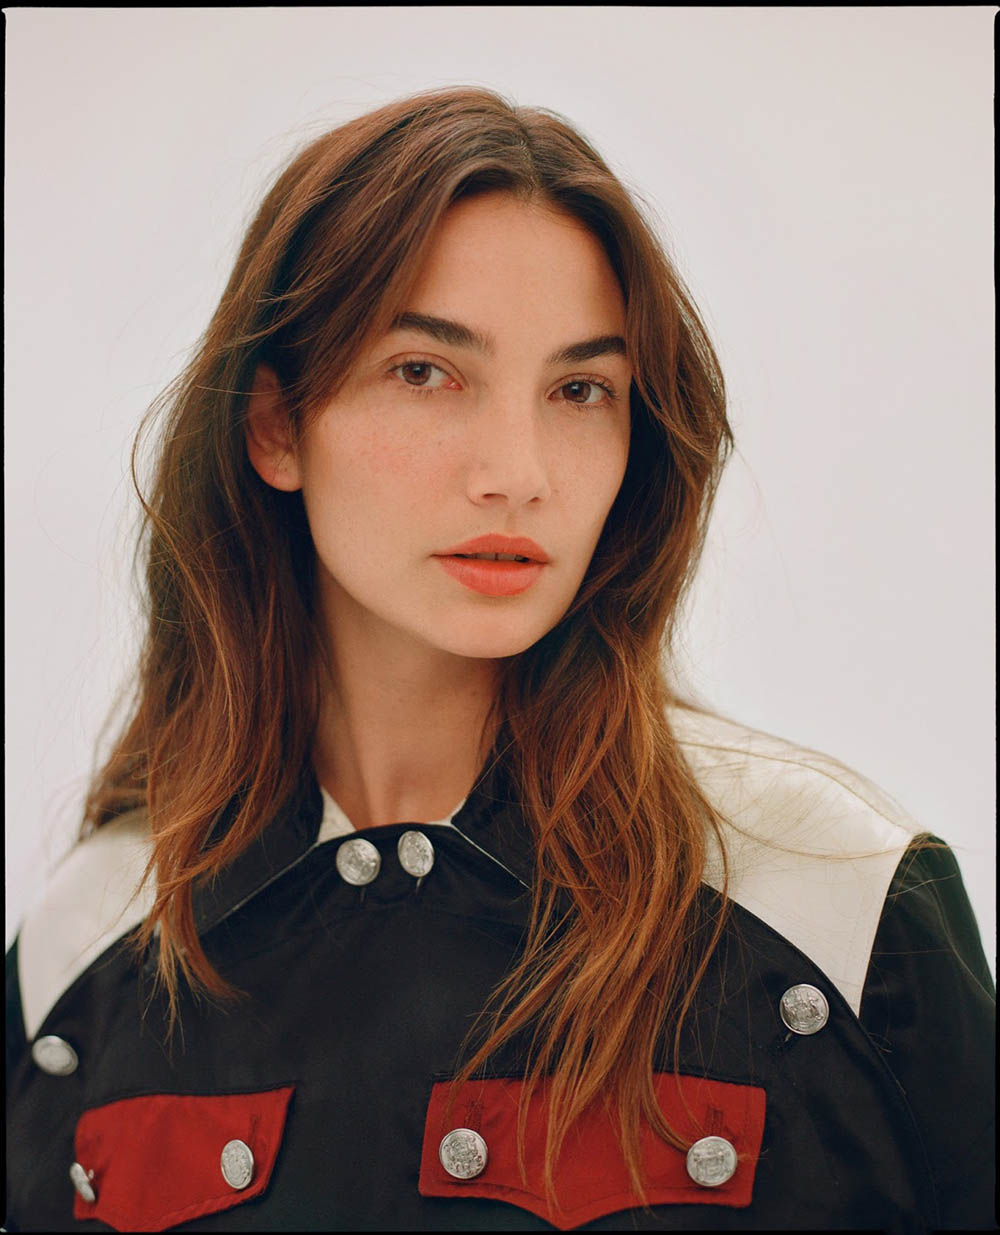 Lily Aldridge covers Porter Edit March 30th, 2018 by Alexander Saladrigas